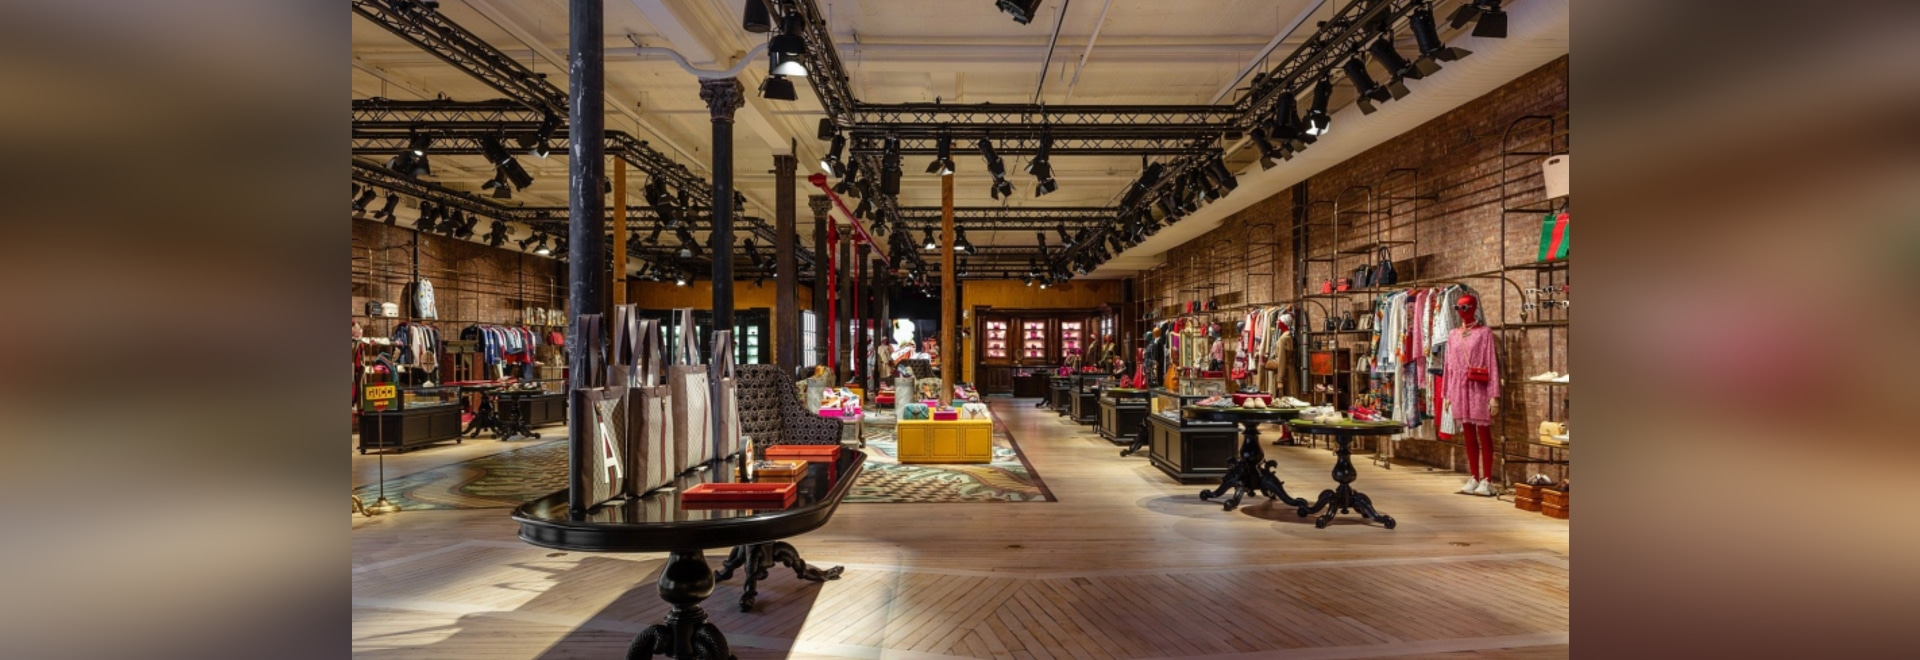 CASTRO WOOD FLOORS AT GUCCI STORES